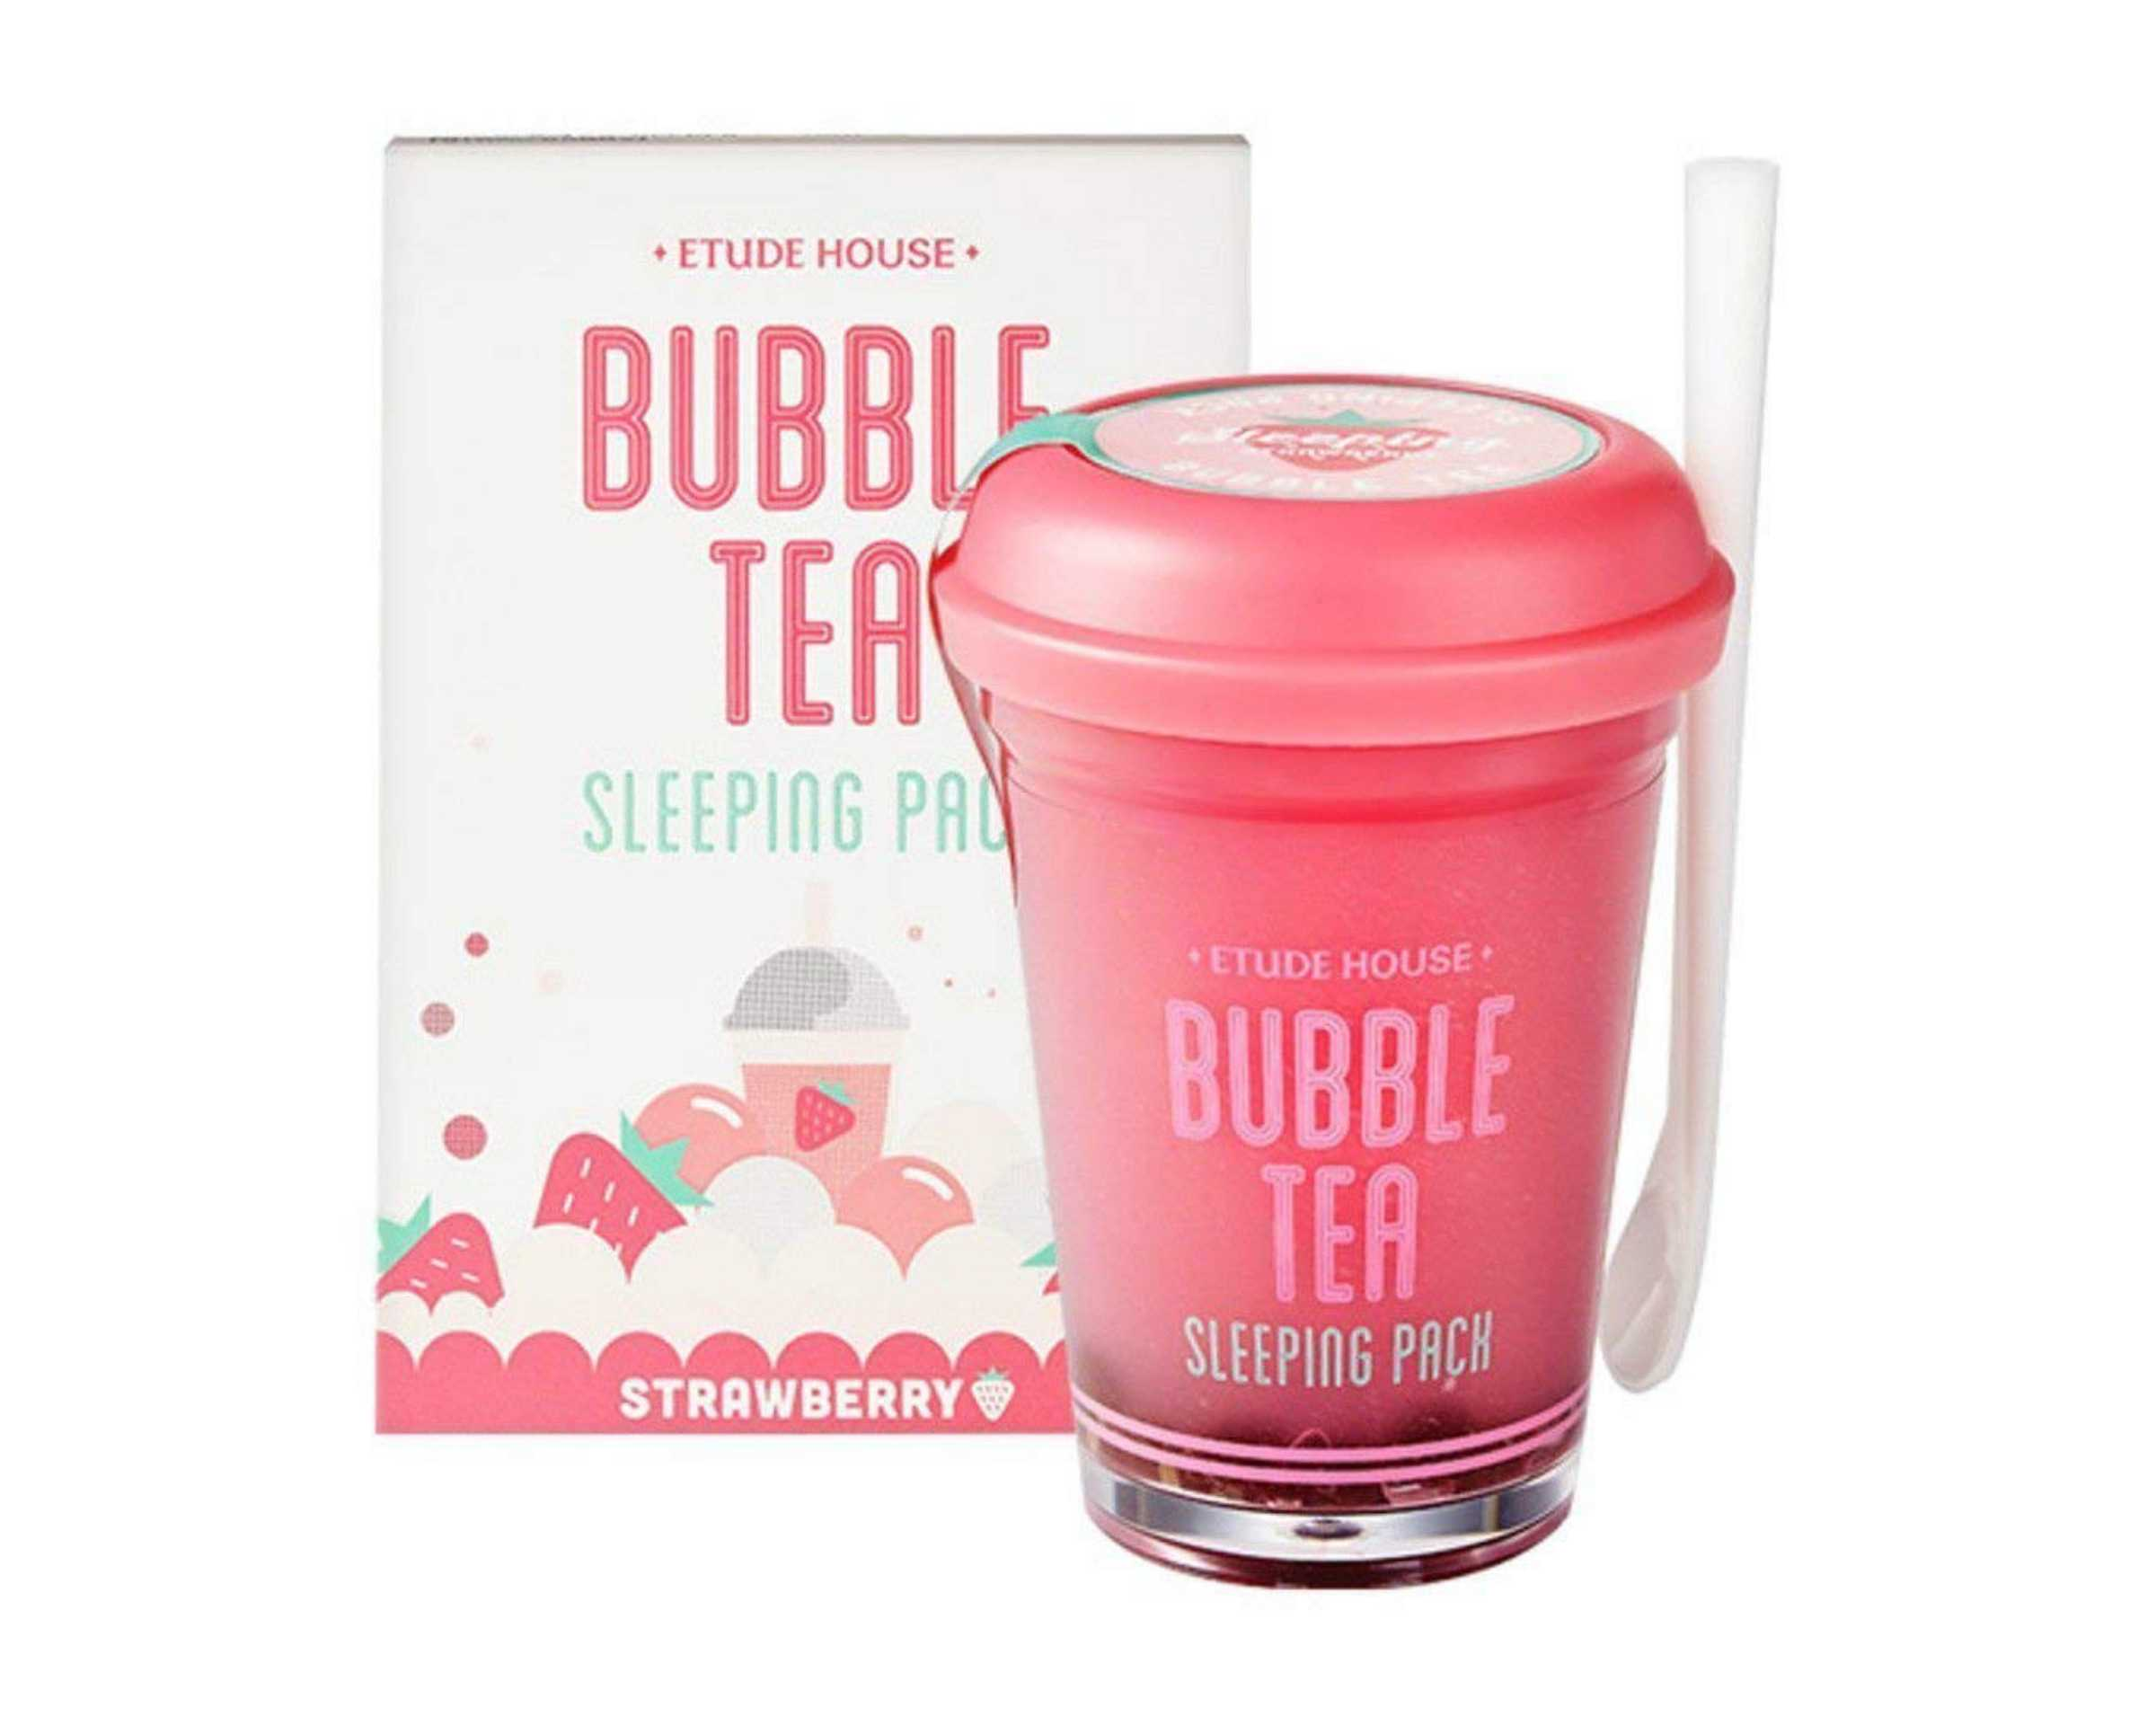 Korean-Products-To-Try-In-2019-Etude-House-Cosmetic-Products-Bubble-Tea-Sleeping-Pack-Strawberry-Tea1